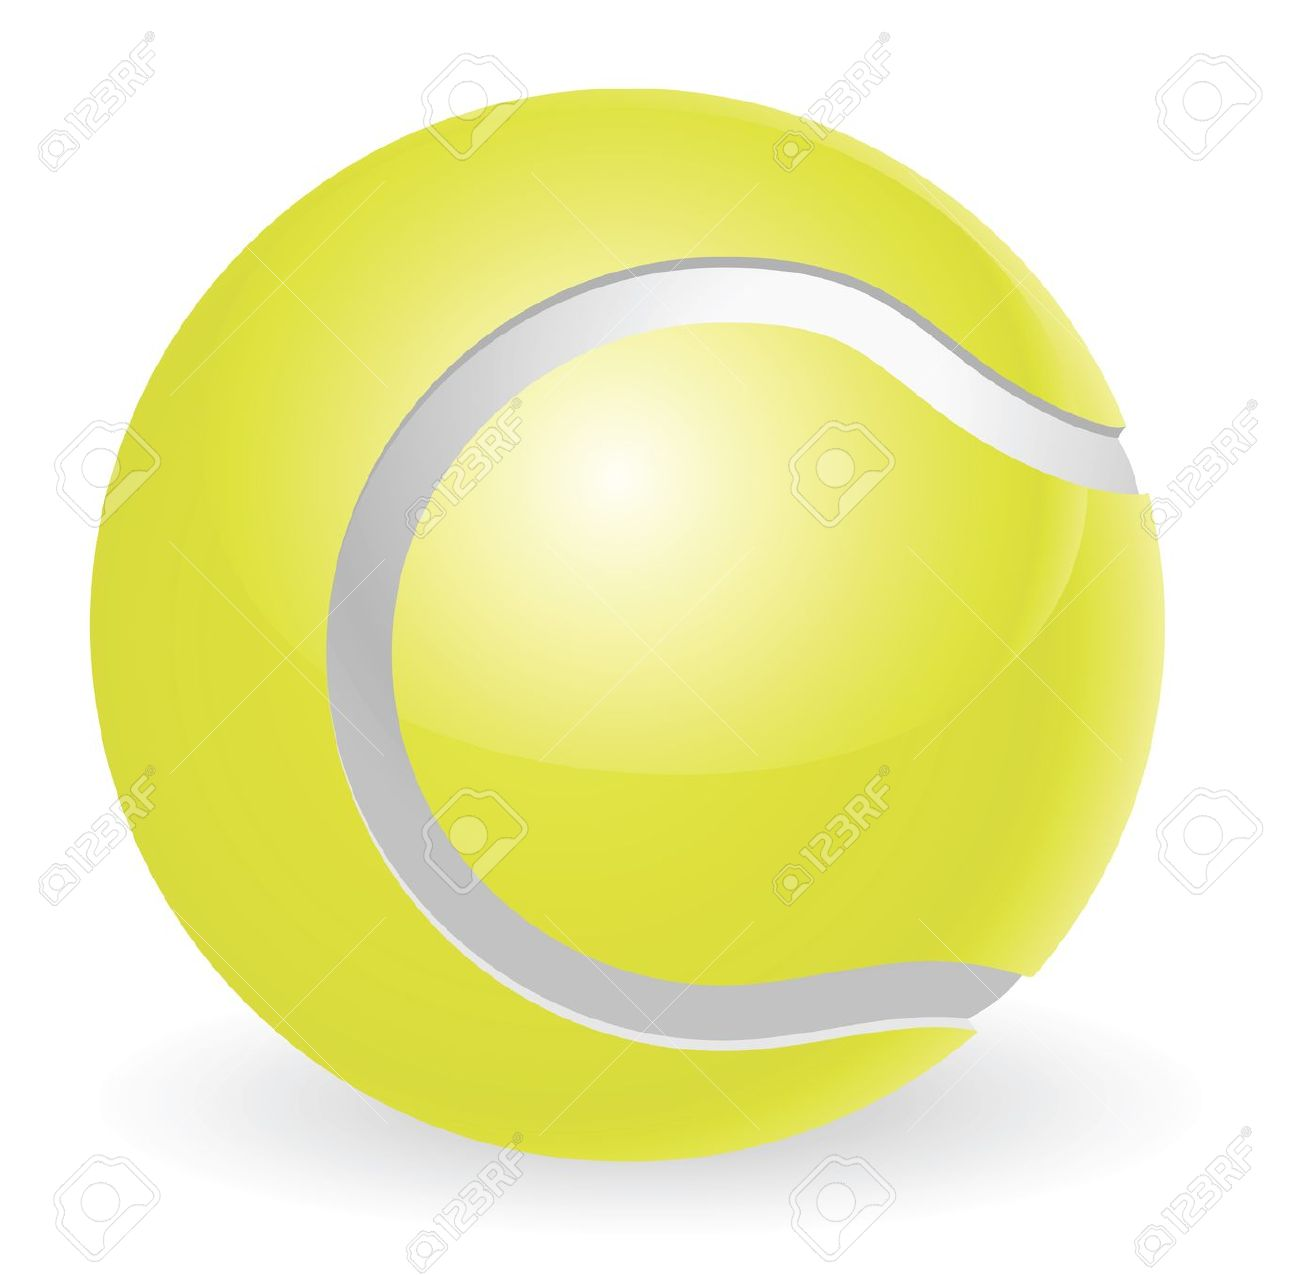 1300x1275 Tennis Ball Clipart Cartoon